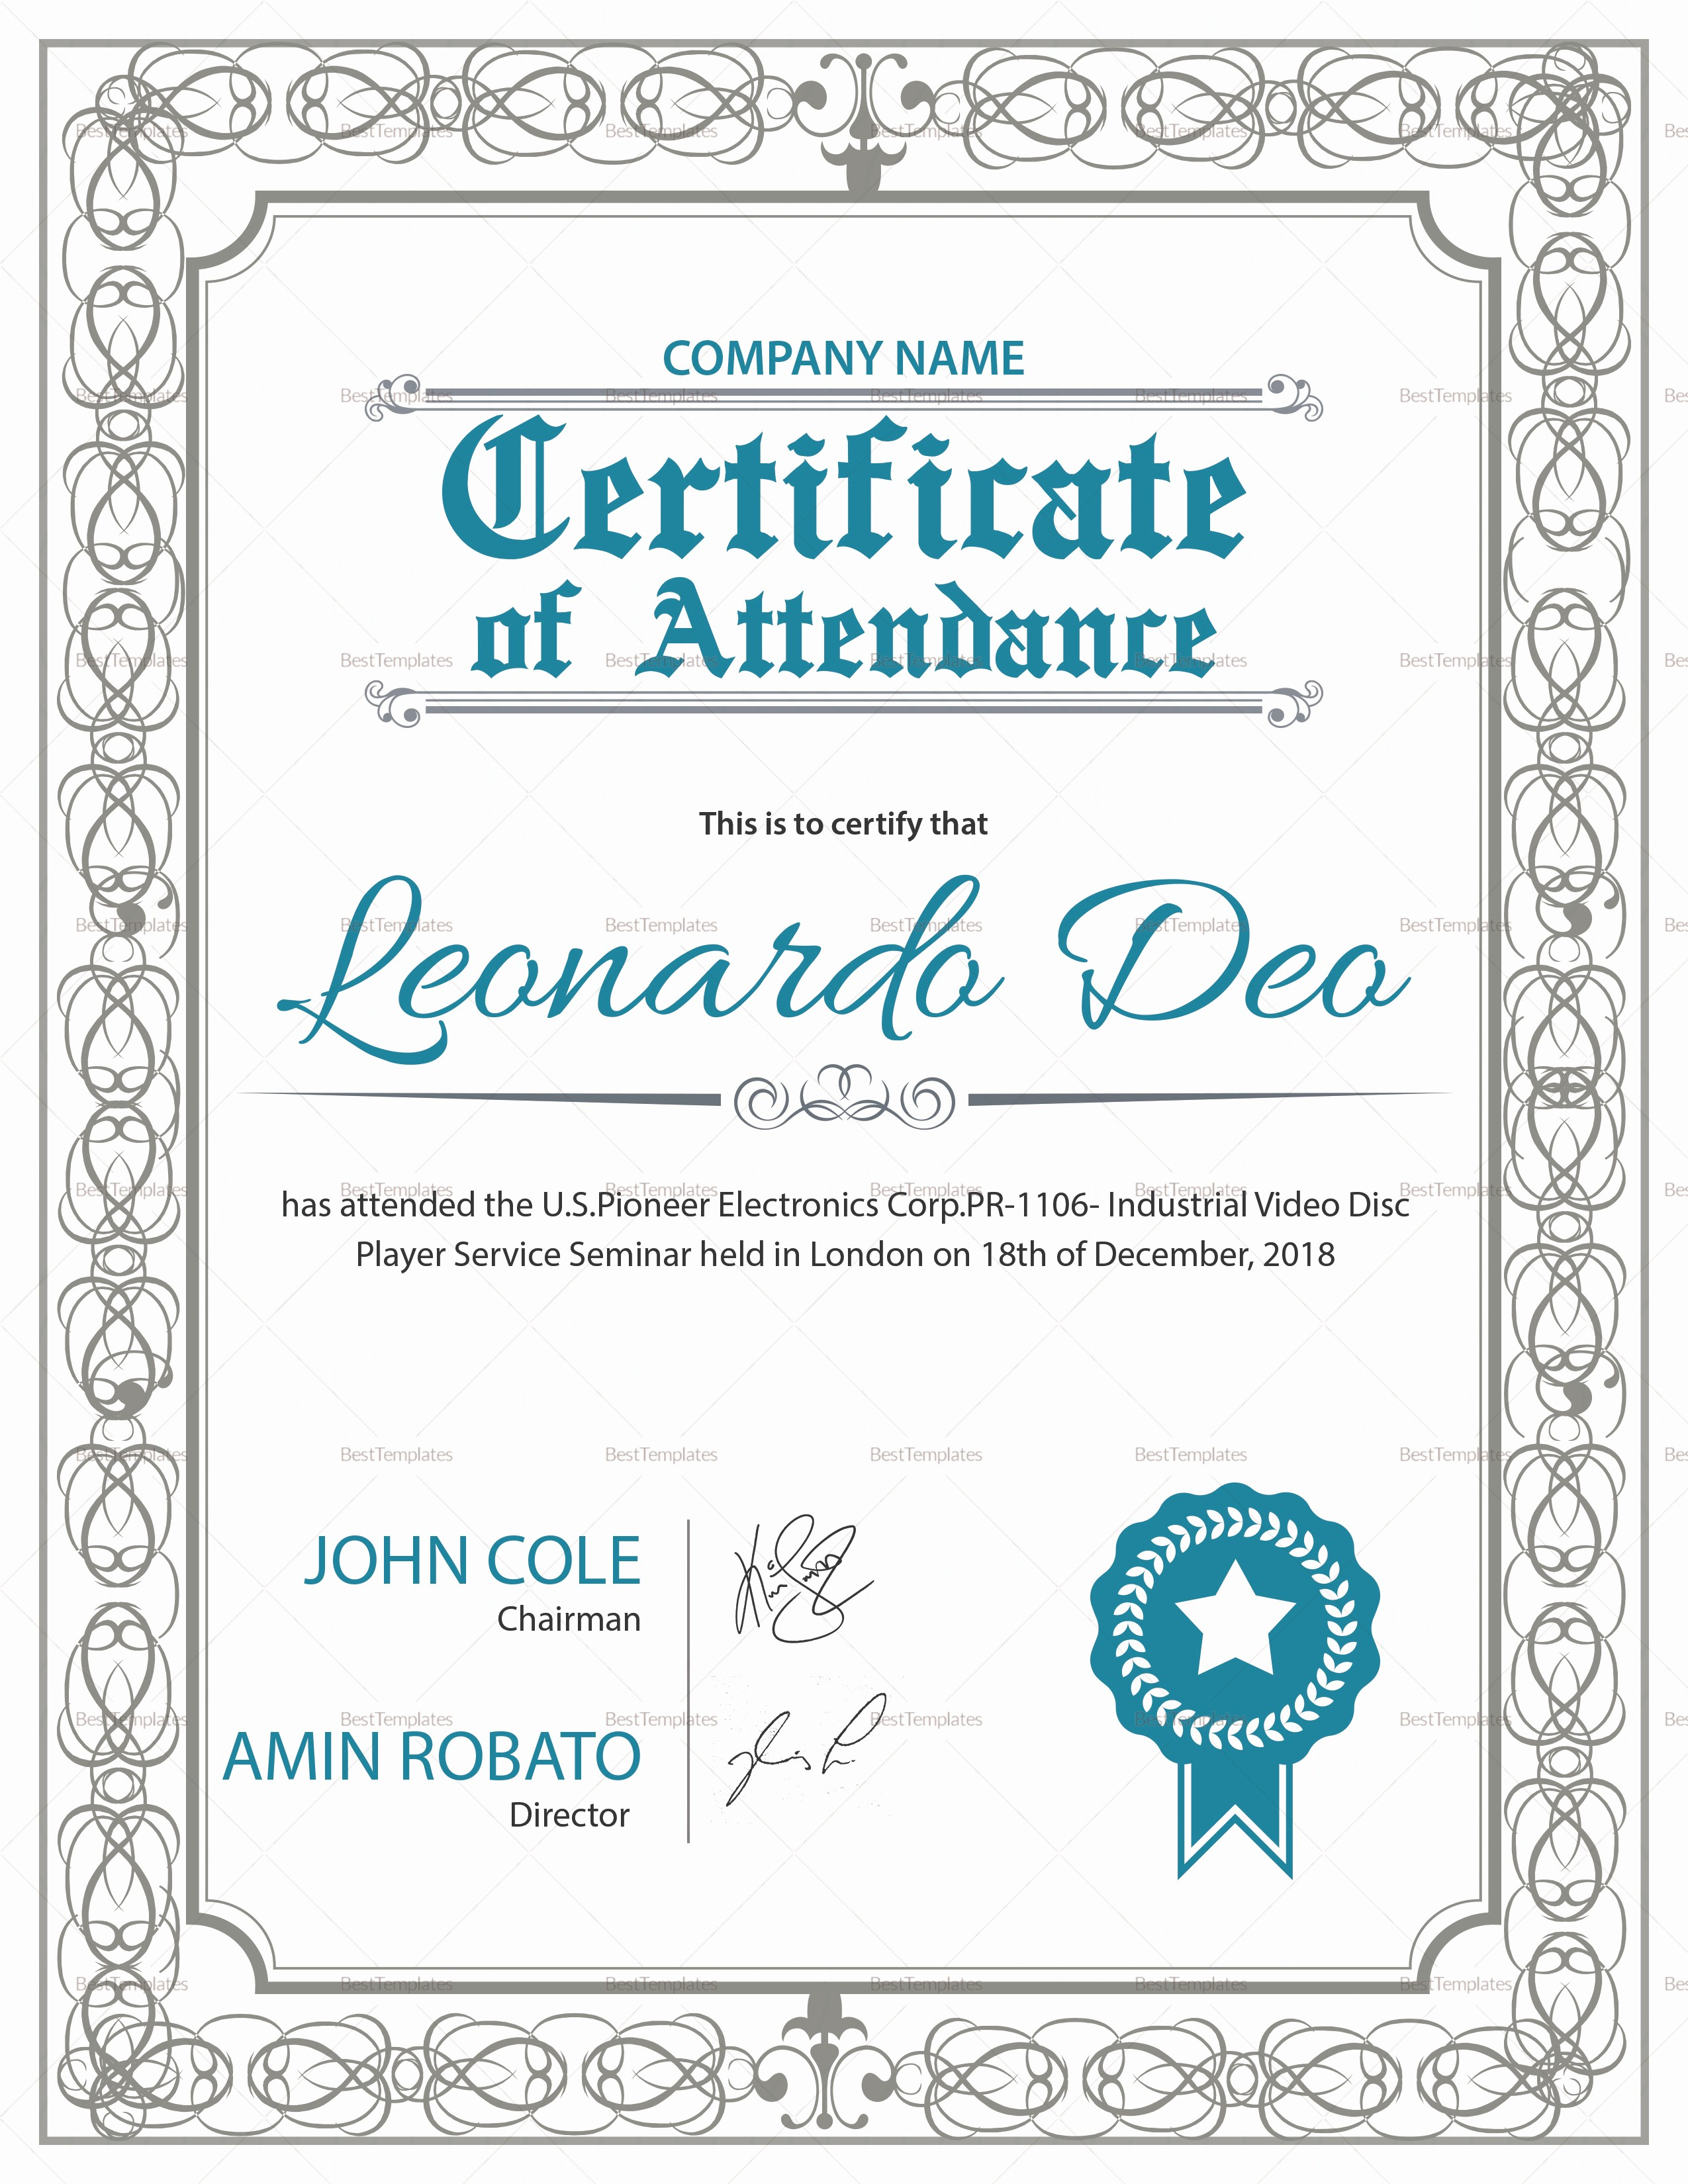 Certificate Of attendance Template Word Lovely Regular attendance Certificate Design Template In Psd Word